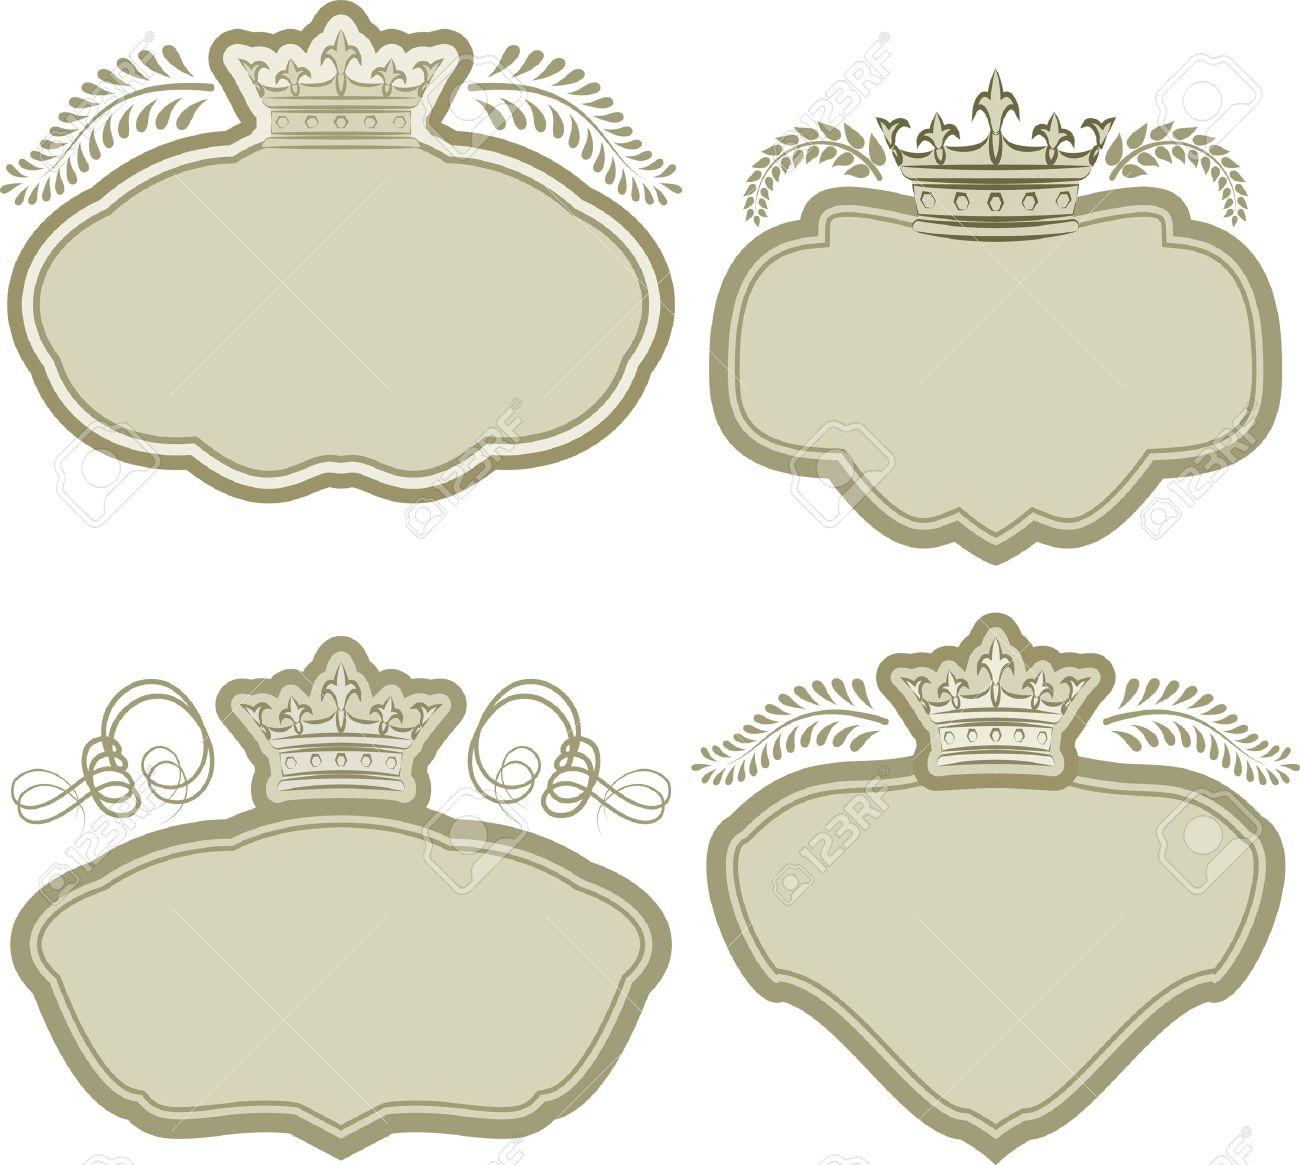 set of backgrounds with crowns Stock Vector - 18726262